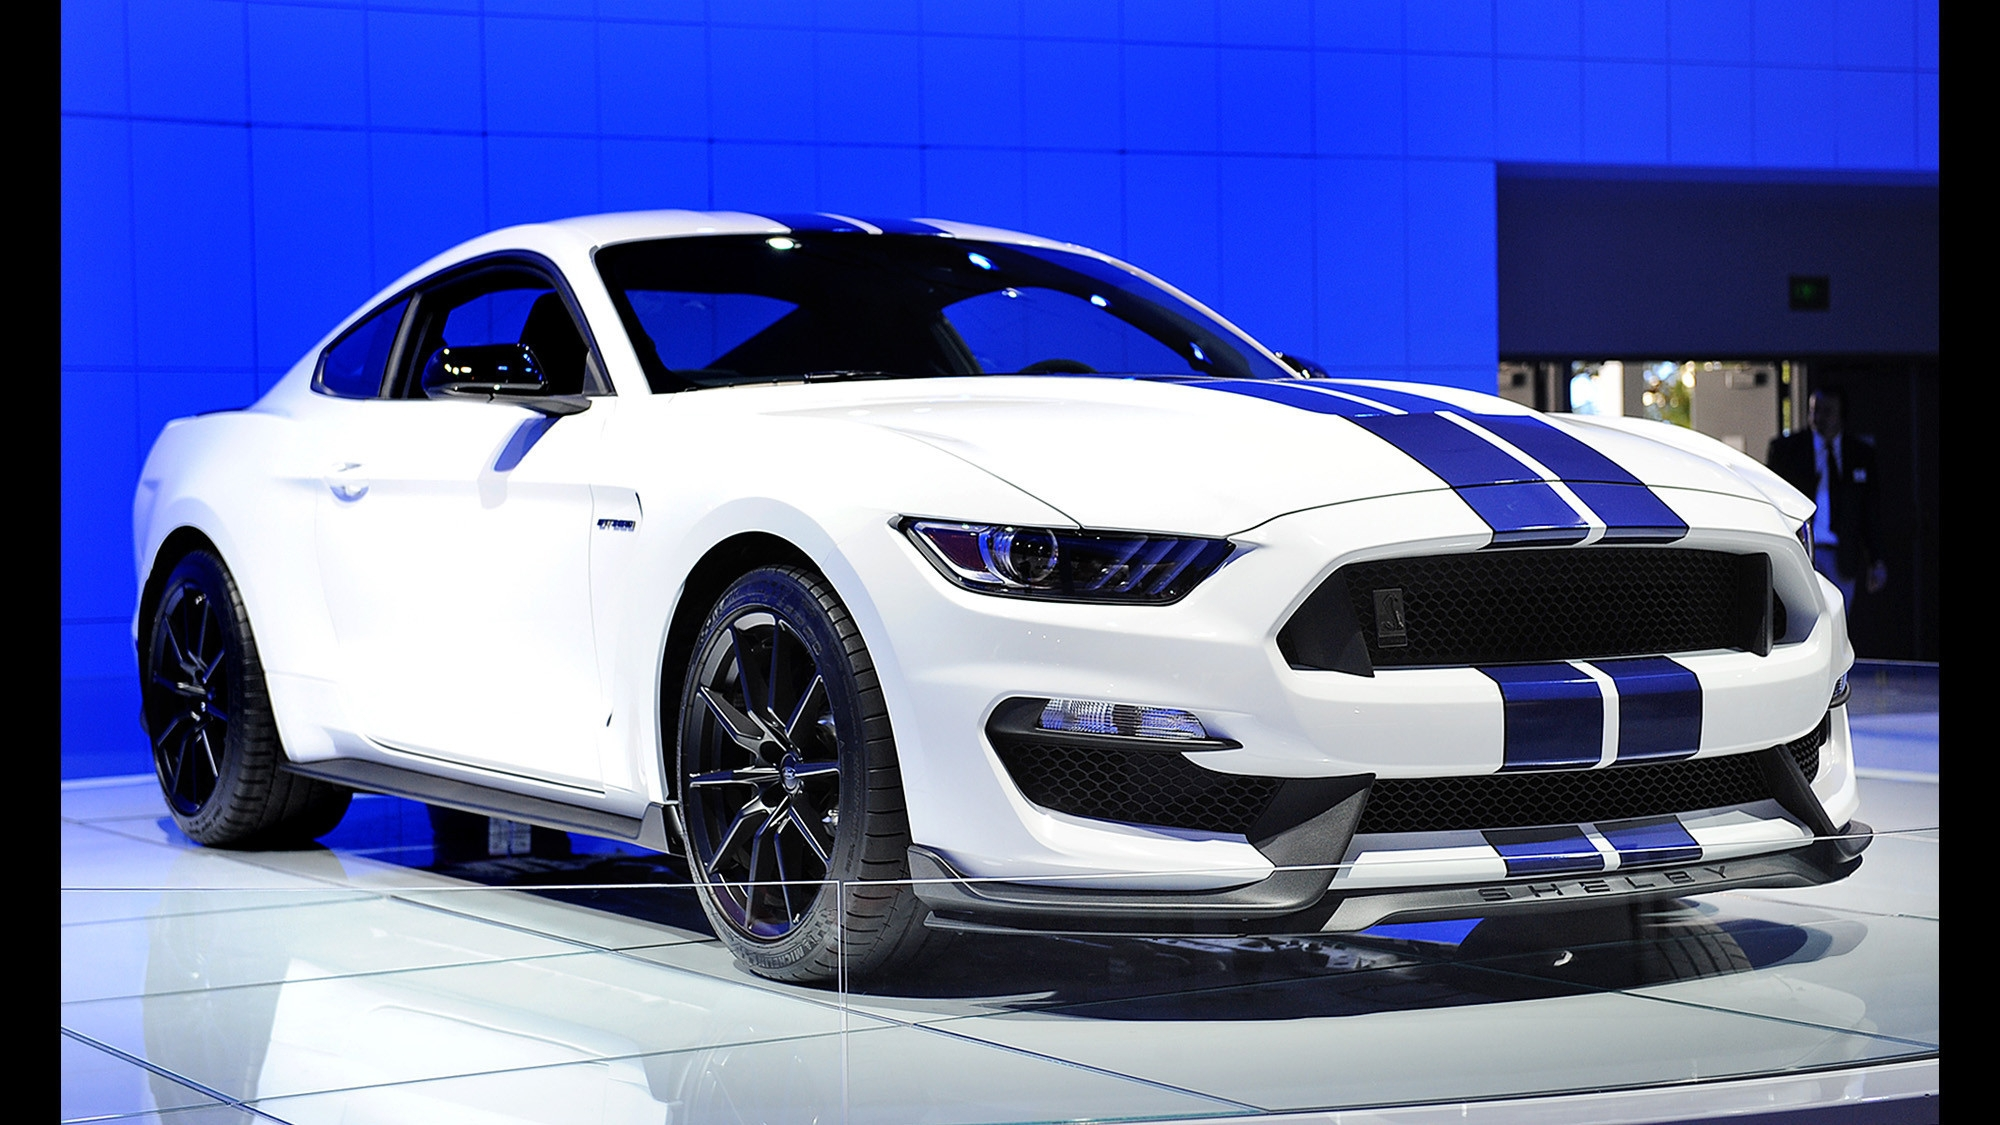 shelby mustang wallpaper - photo #24